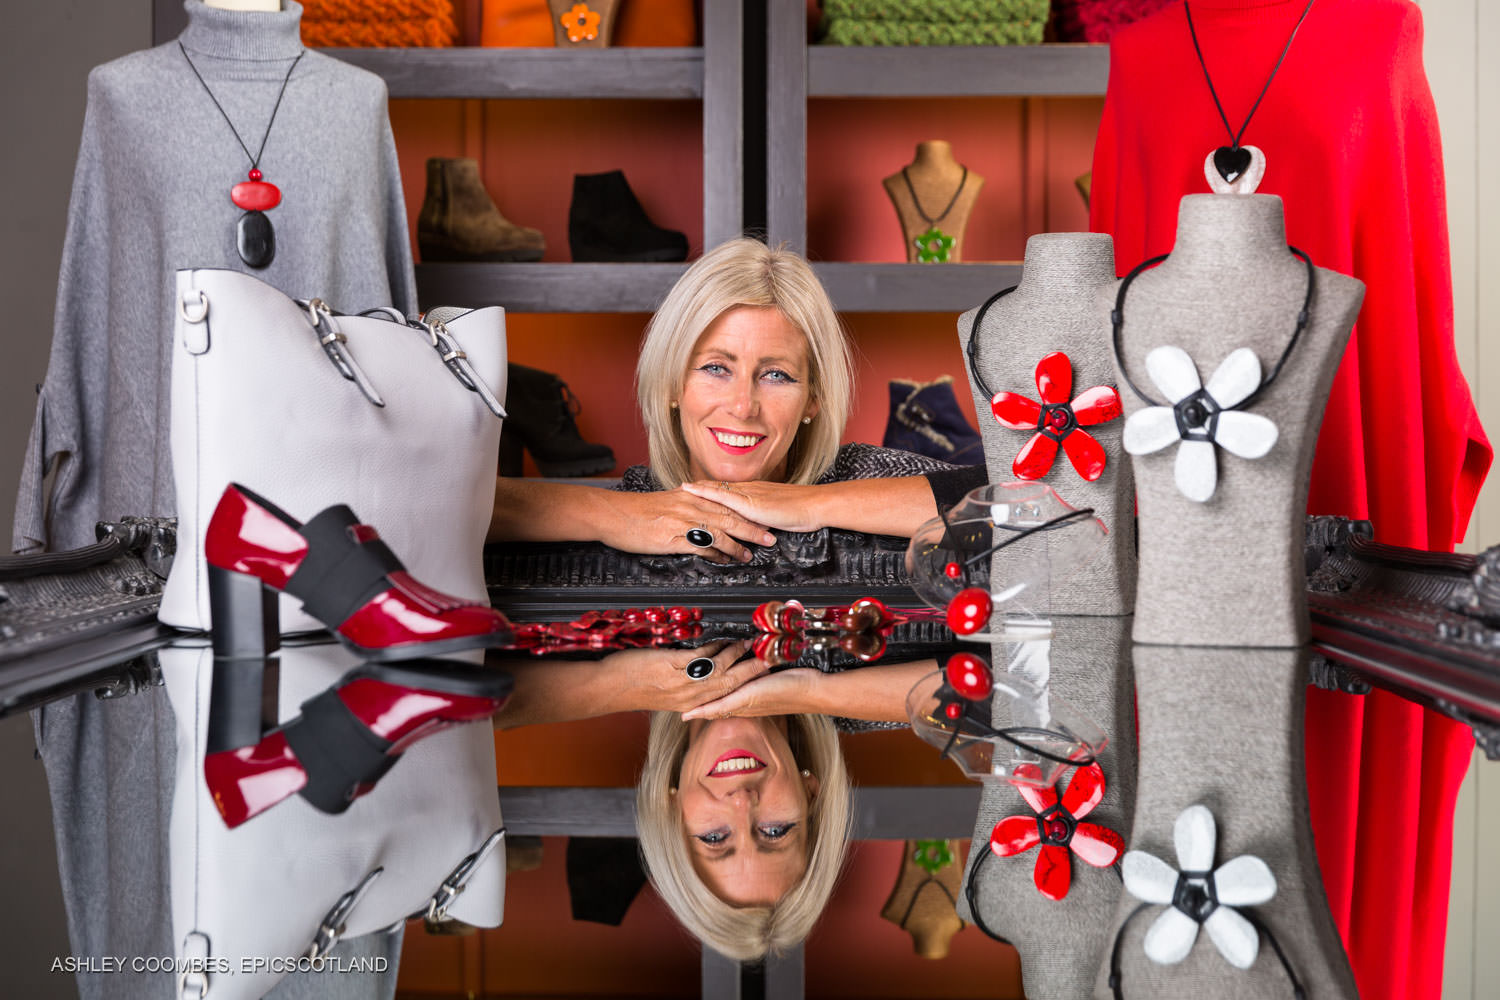 Photo of Cheryl in her shop to boost small business marketing